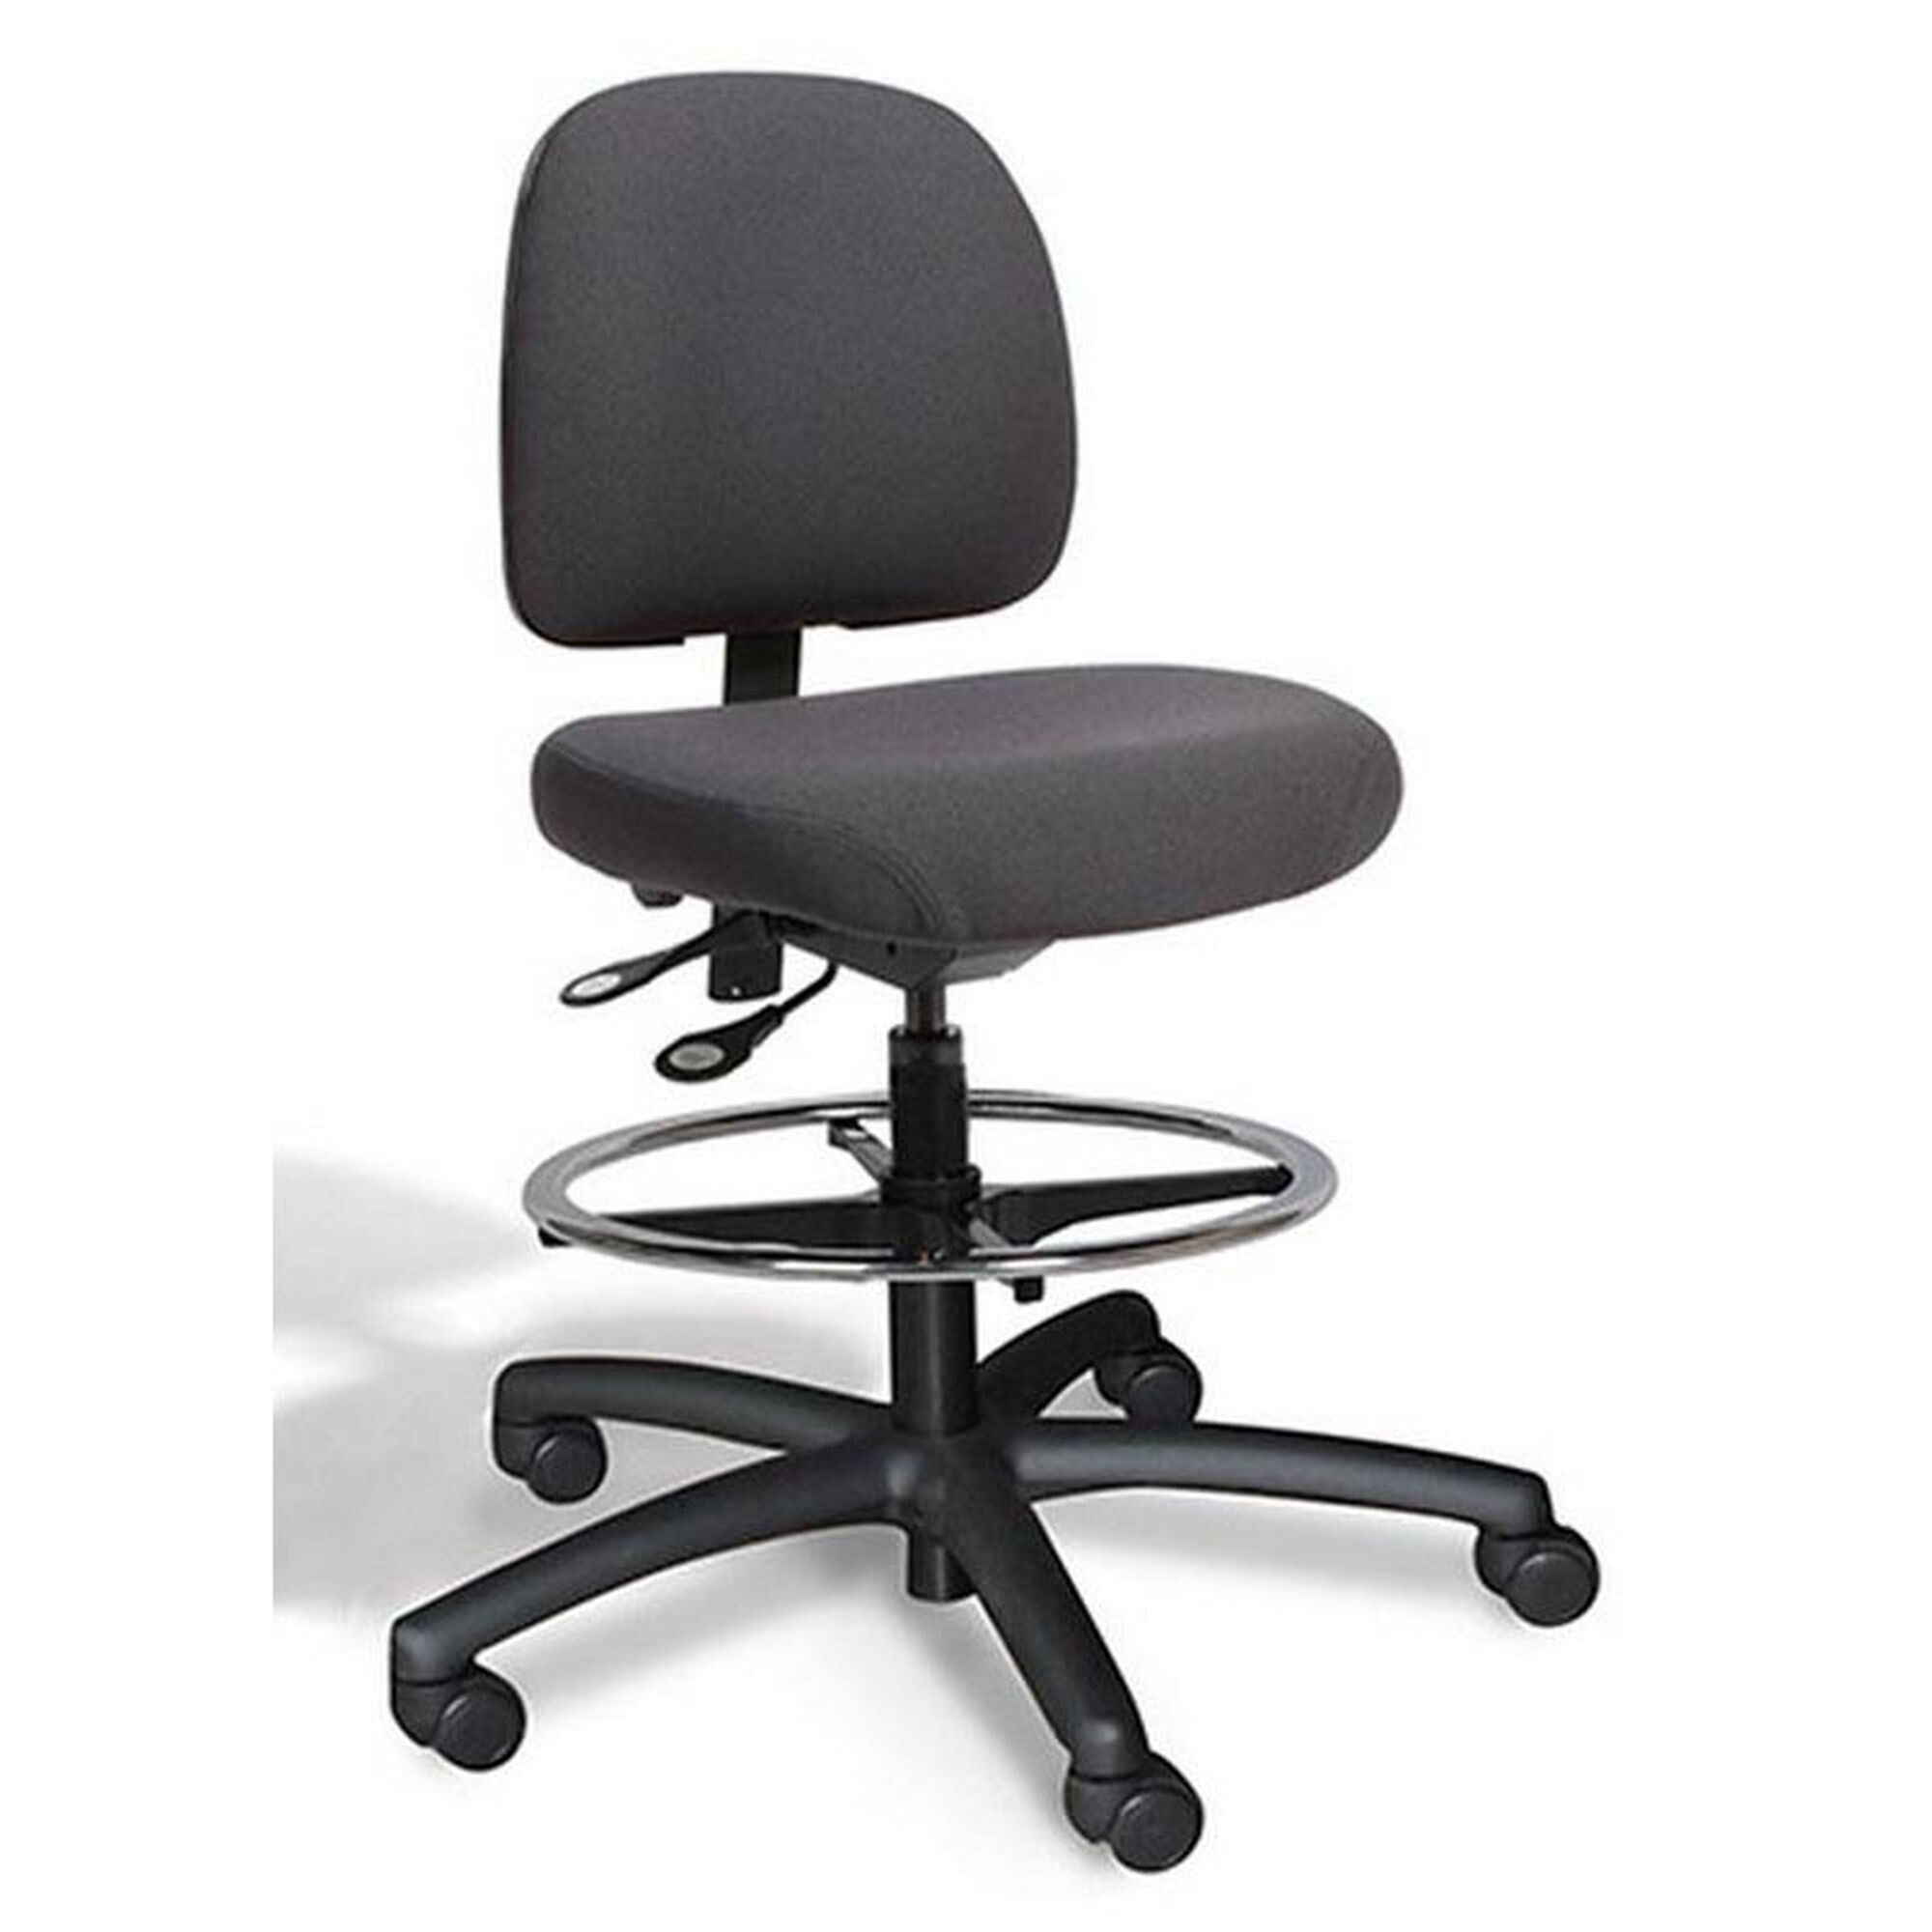 office chair controls. Hover To Zoom Office Chair Controls